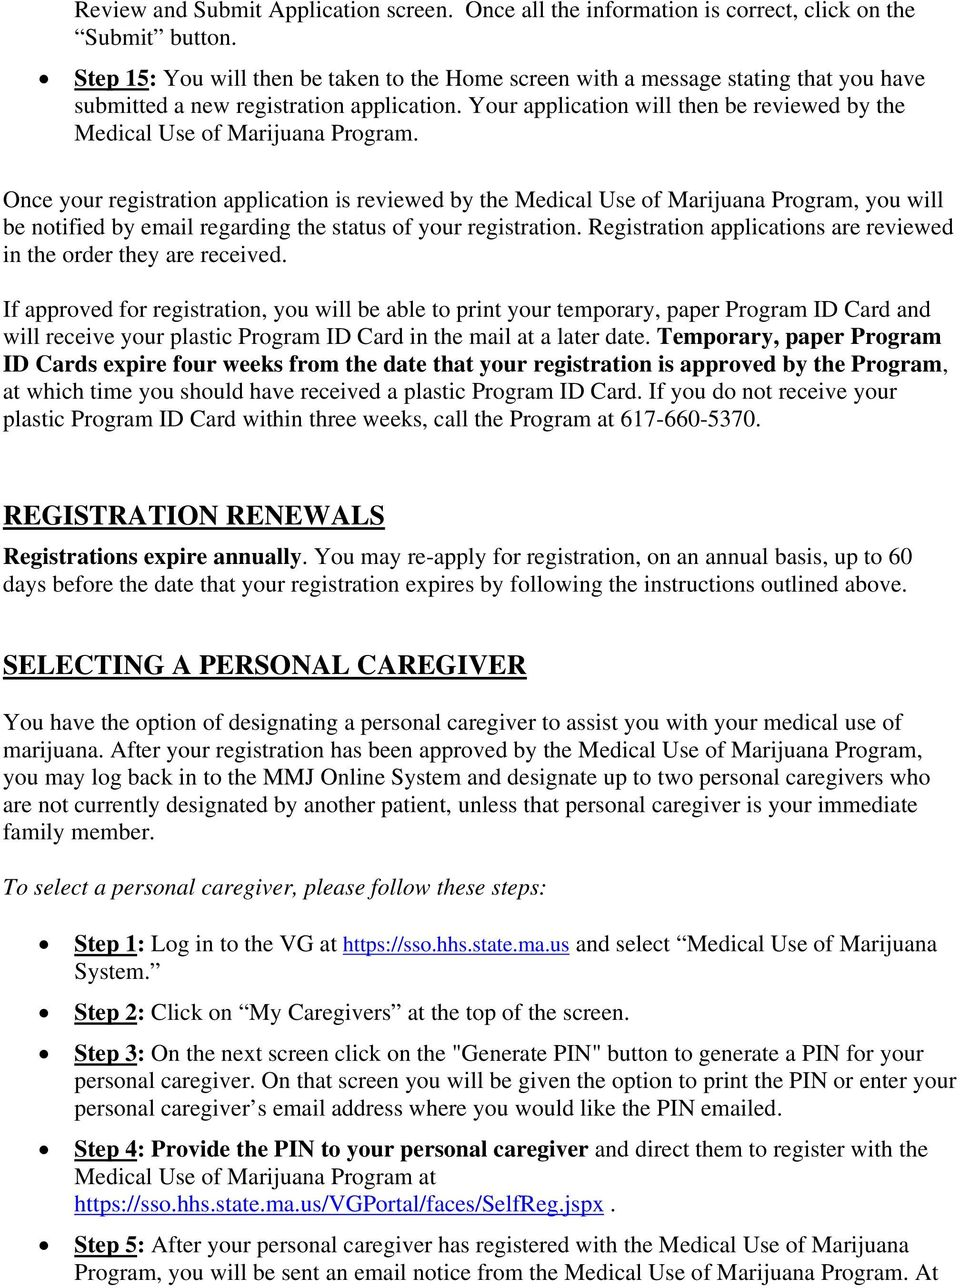 Your application will then be reviewed by the Medical Use of Marijuana Program.